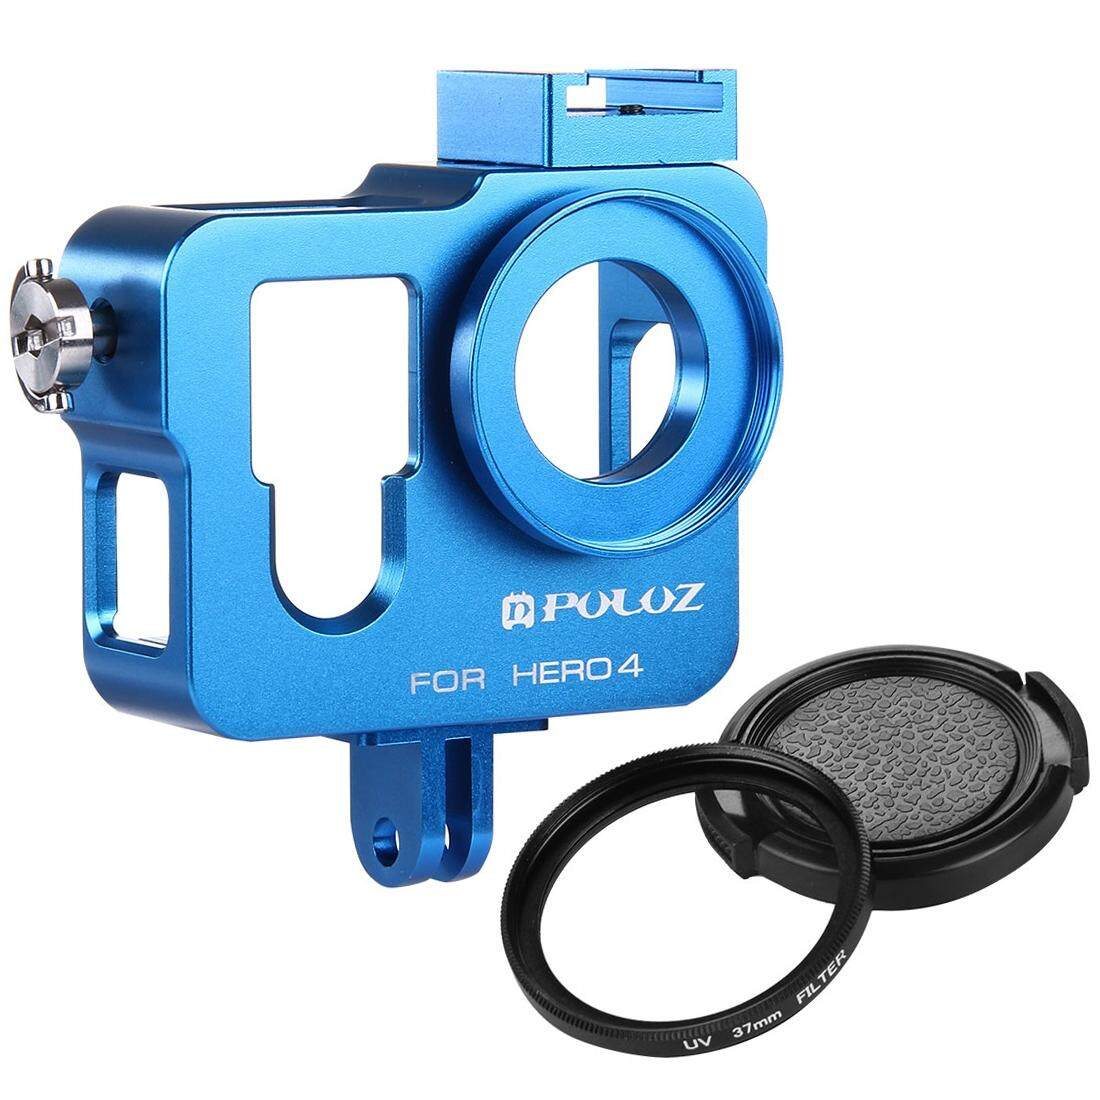 Discount Puluz Housing Shell Cnc Aluminum Alloy Protective Cage With 37Mm Uv Lens Filter And Lens Cap For Gopro Hero4 Blue Intl Oem China